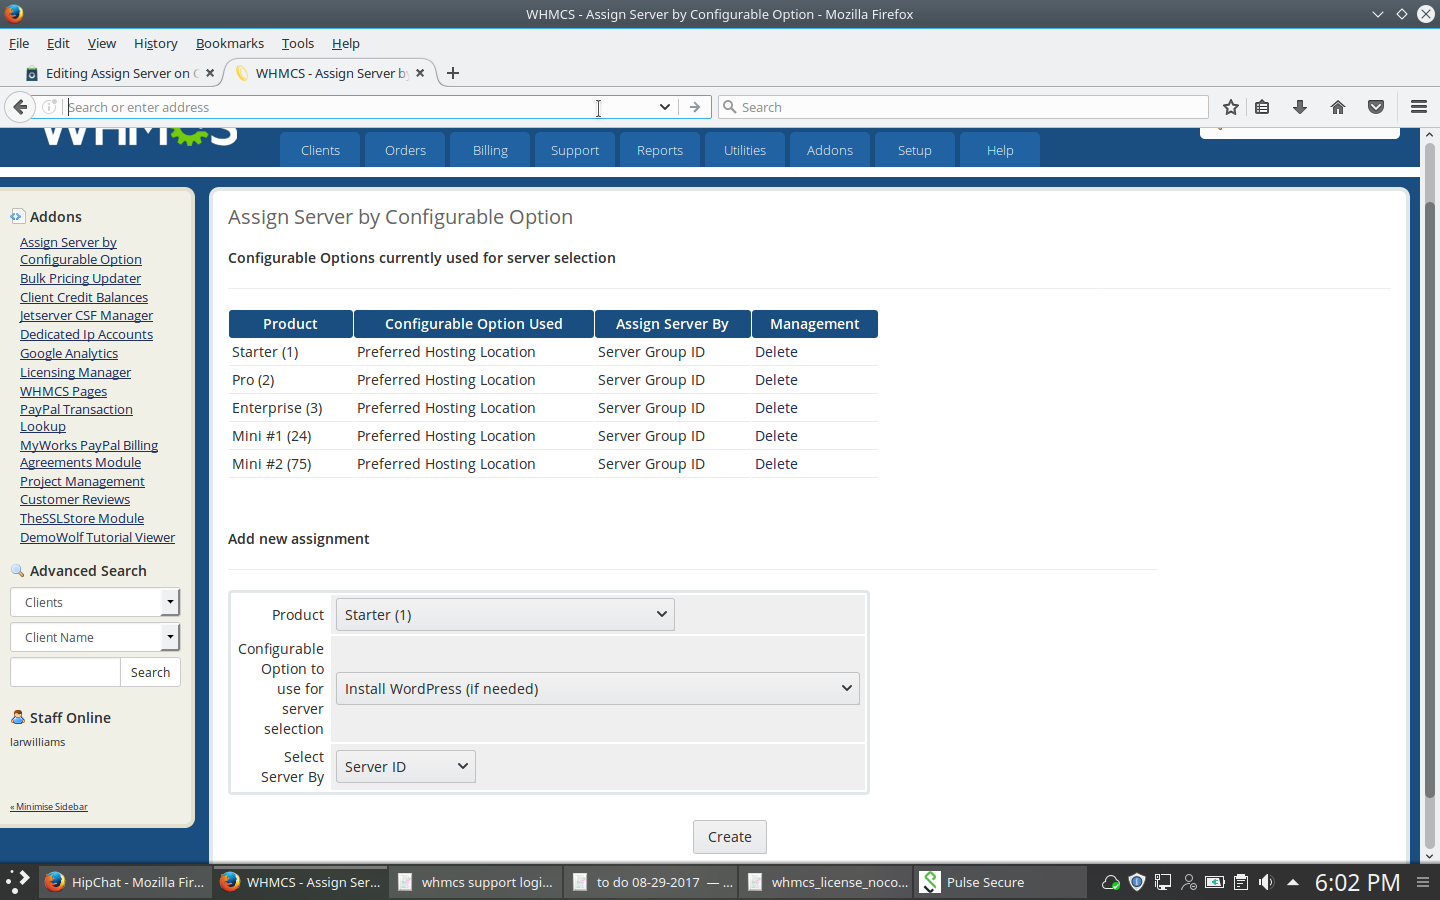 Assign Server on Configurable Option - WHMCS Marketplace